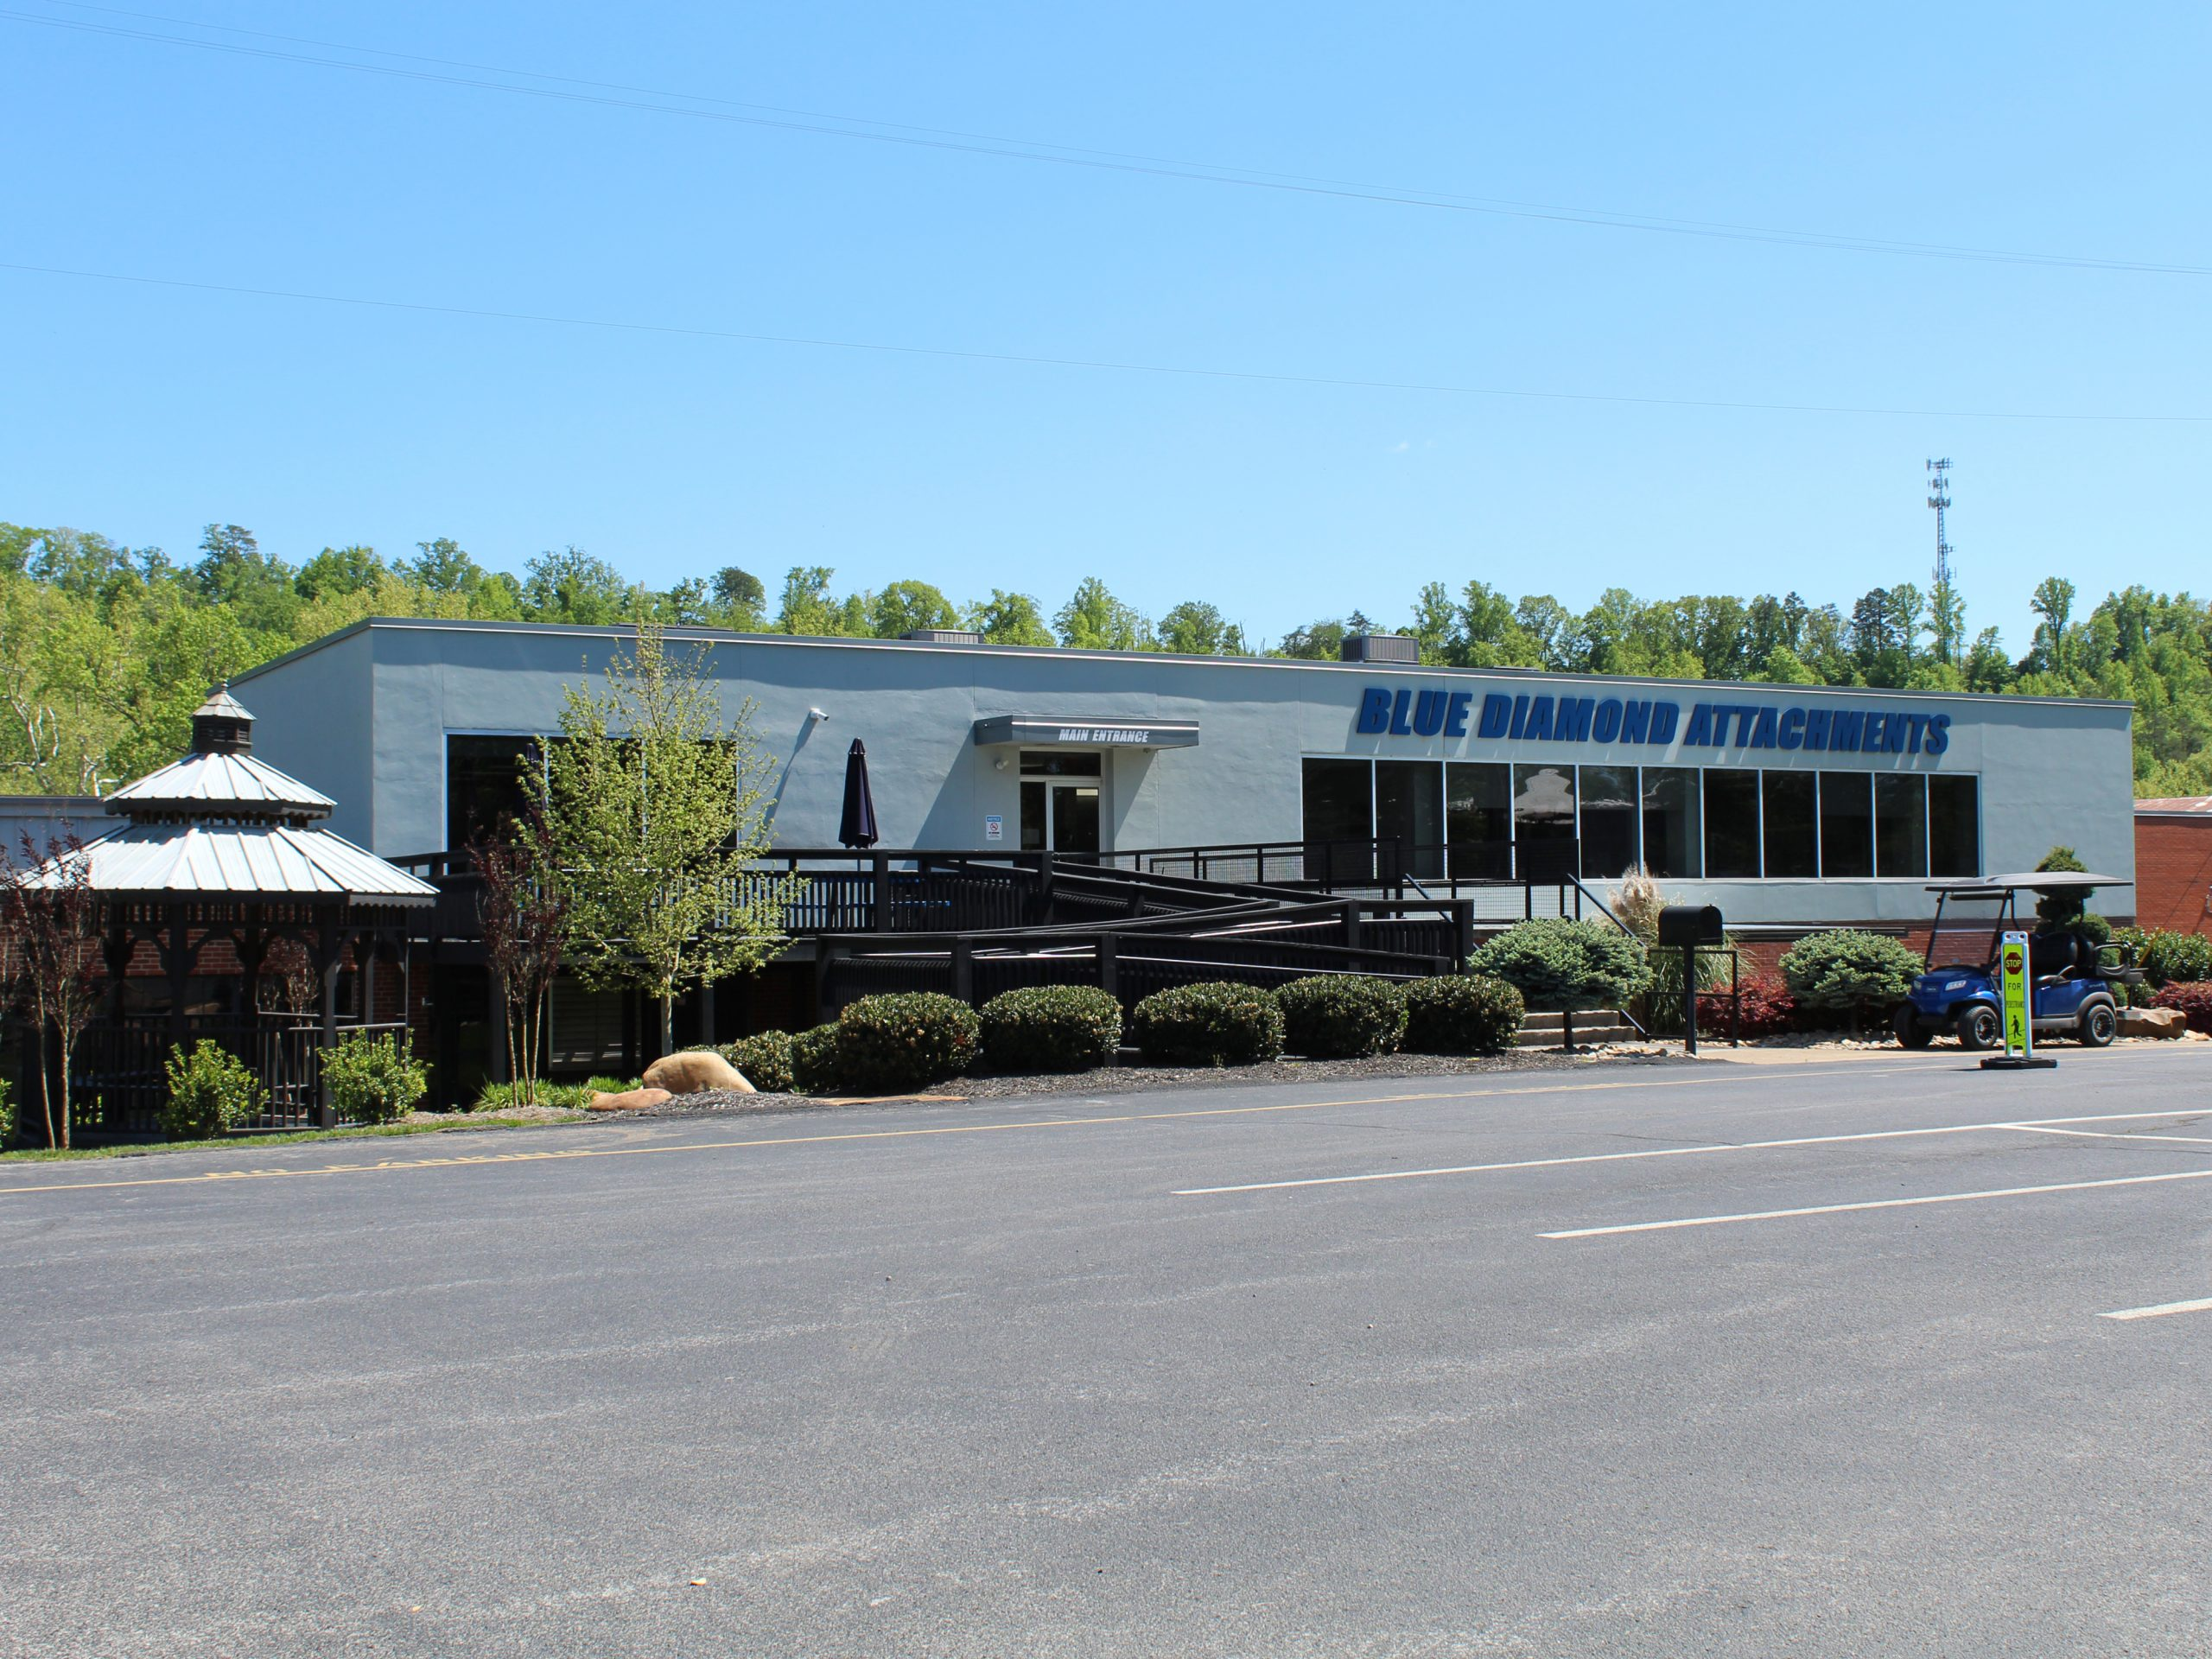 Industrial, commercial property for sale in Knoxville